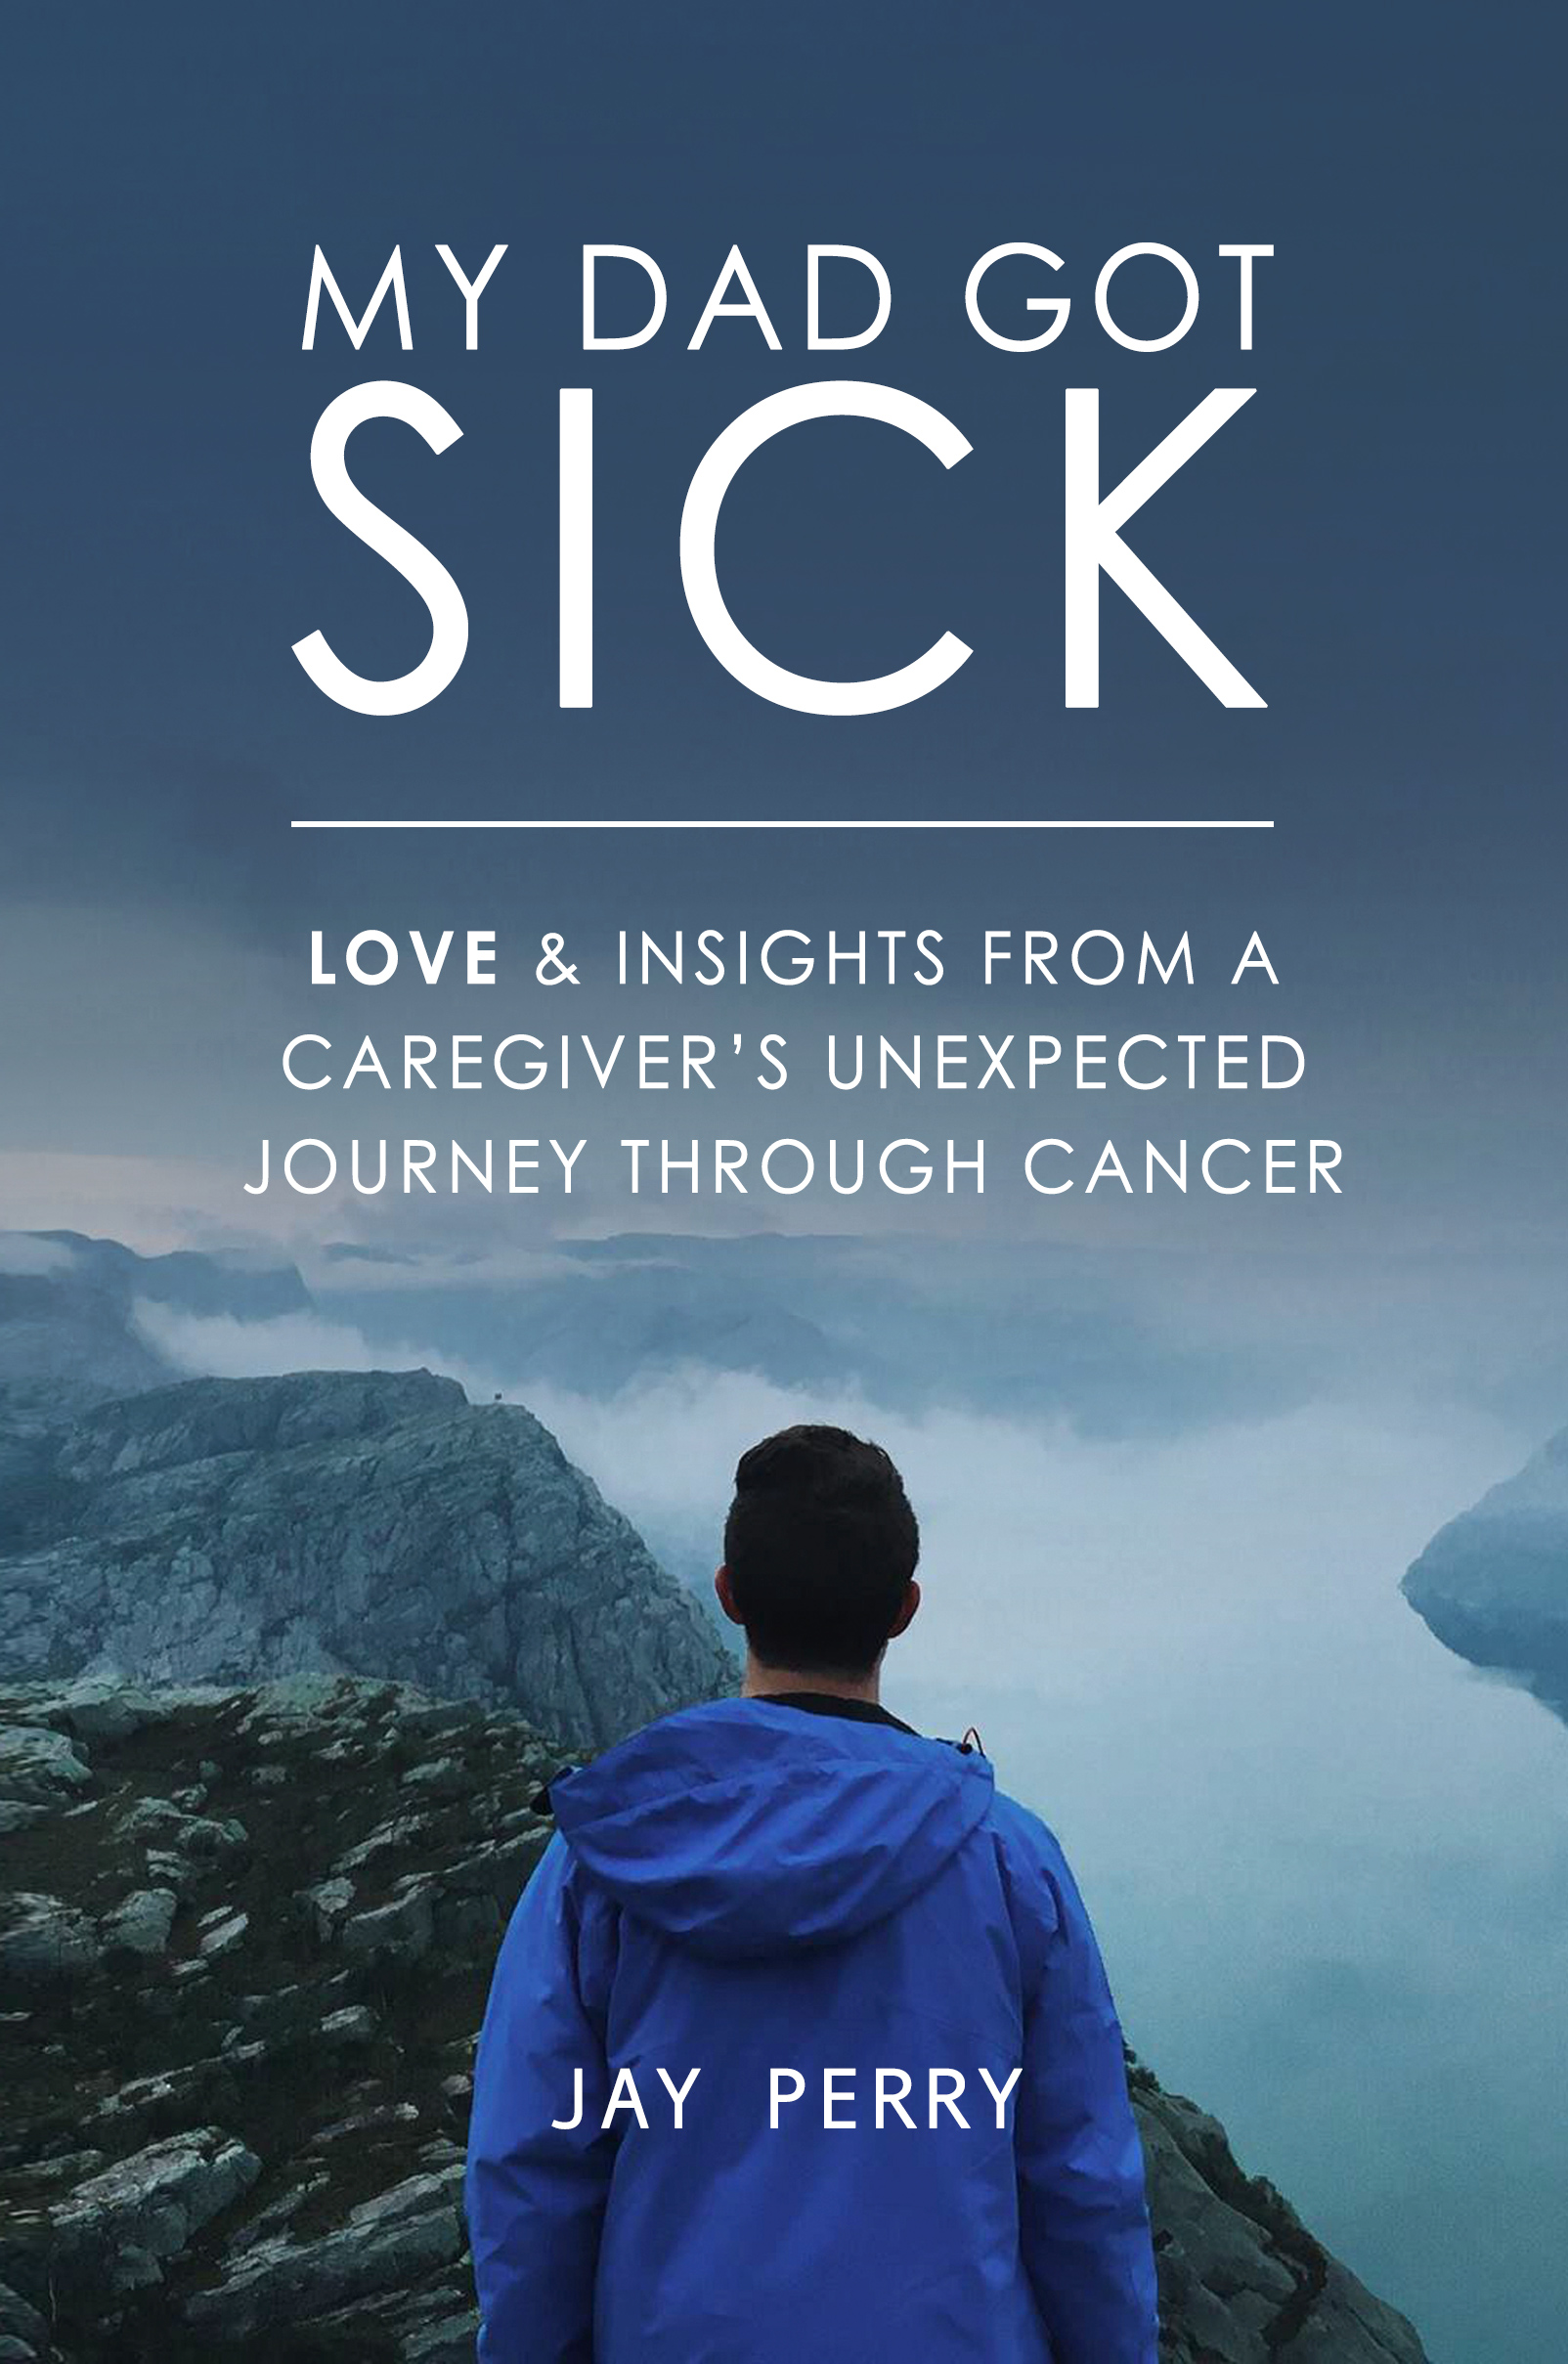 My Dad Got Sick: Love and Insights From a Caregiver's Unexpected Journey Through Cancer